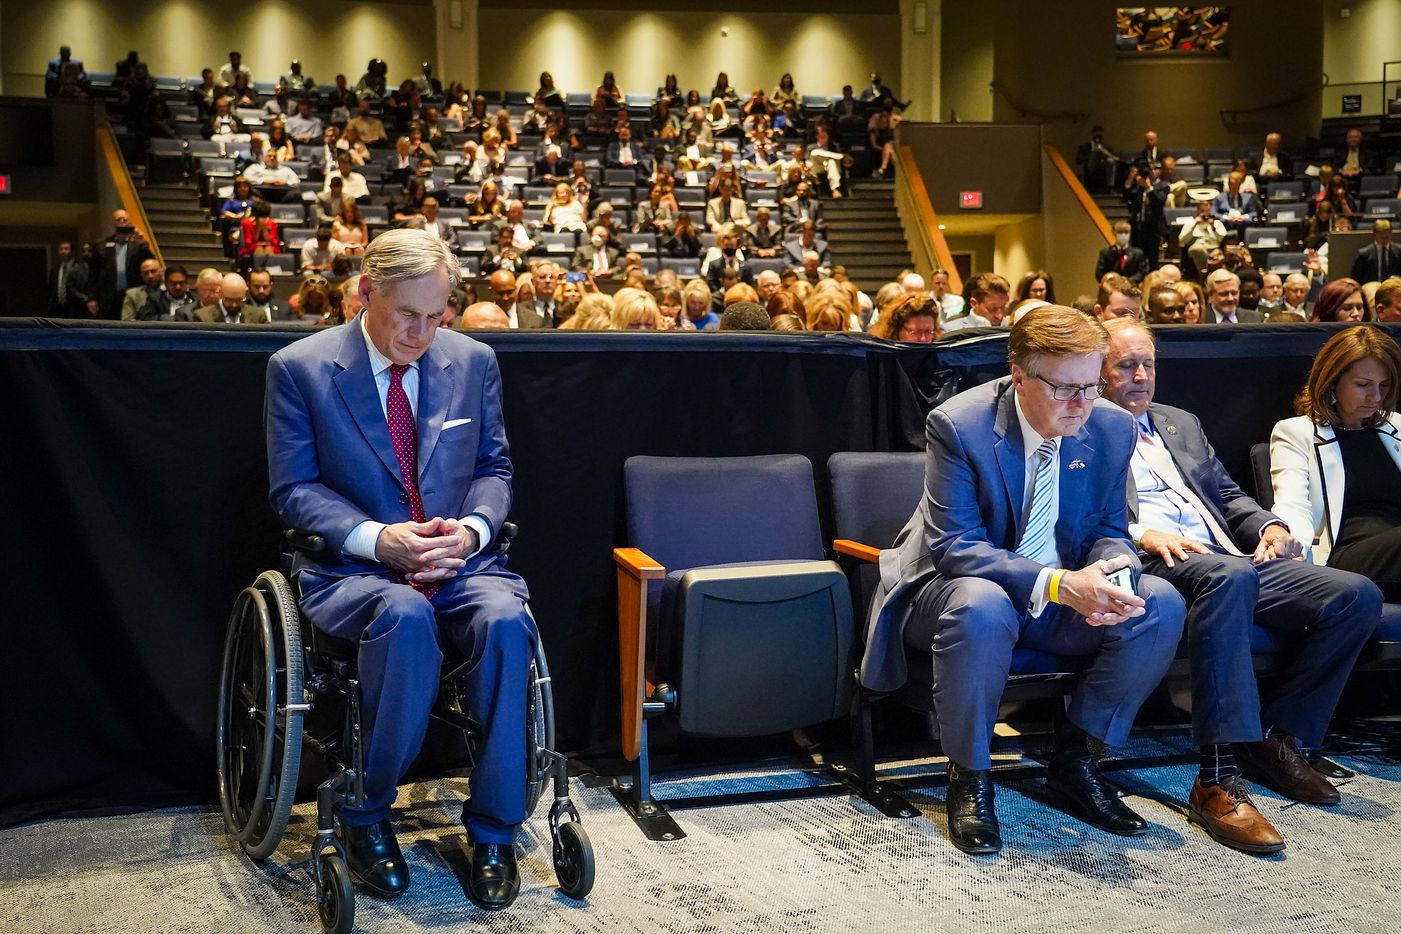 (from left) Texas Gov. Greg Abbott , Lt. Gov. Dan Patrick, and Attorney General Ken Paxton pray during a roundtable conversation about race relations and policing at Gateway Church Dallas Campus on Thursday, June 11, 2020, in Dallas. (Smiley N. Pool/The Dallas Morning News)